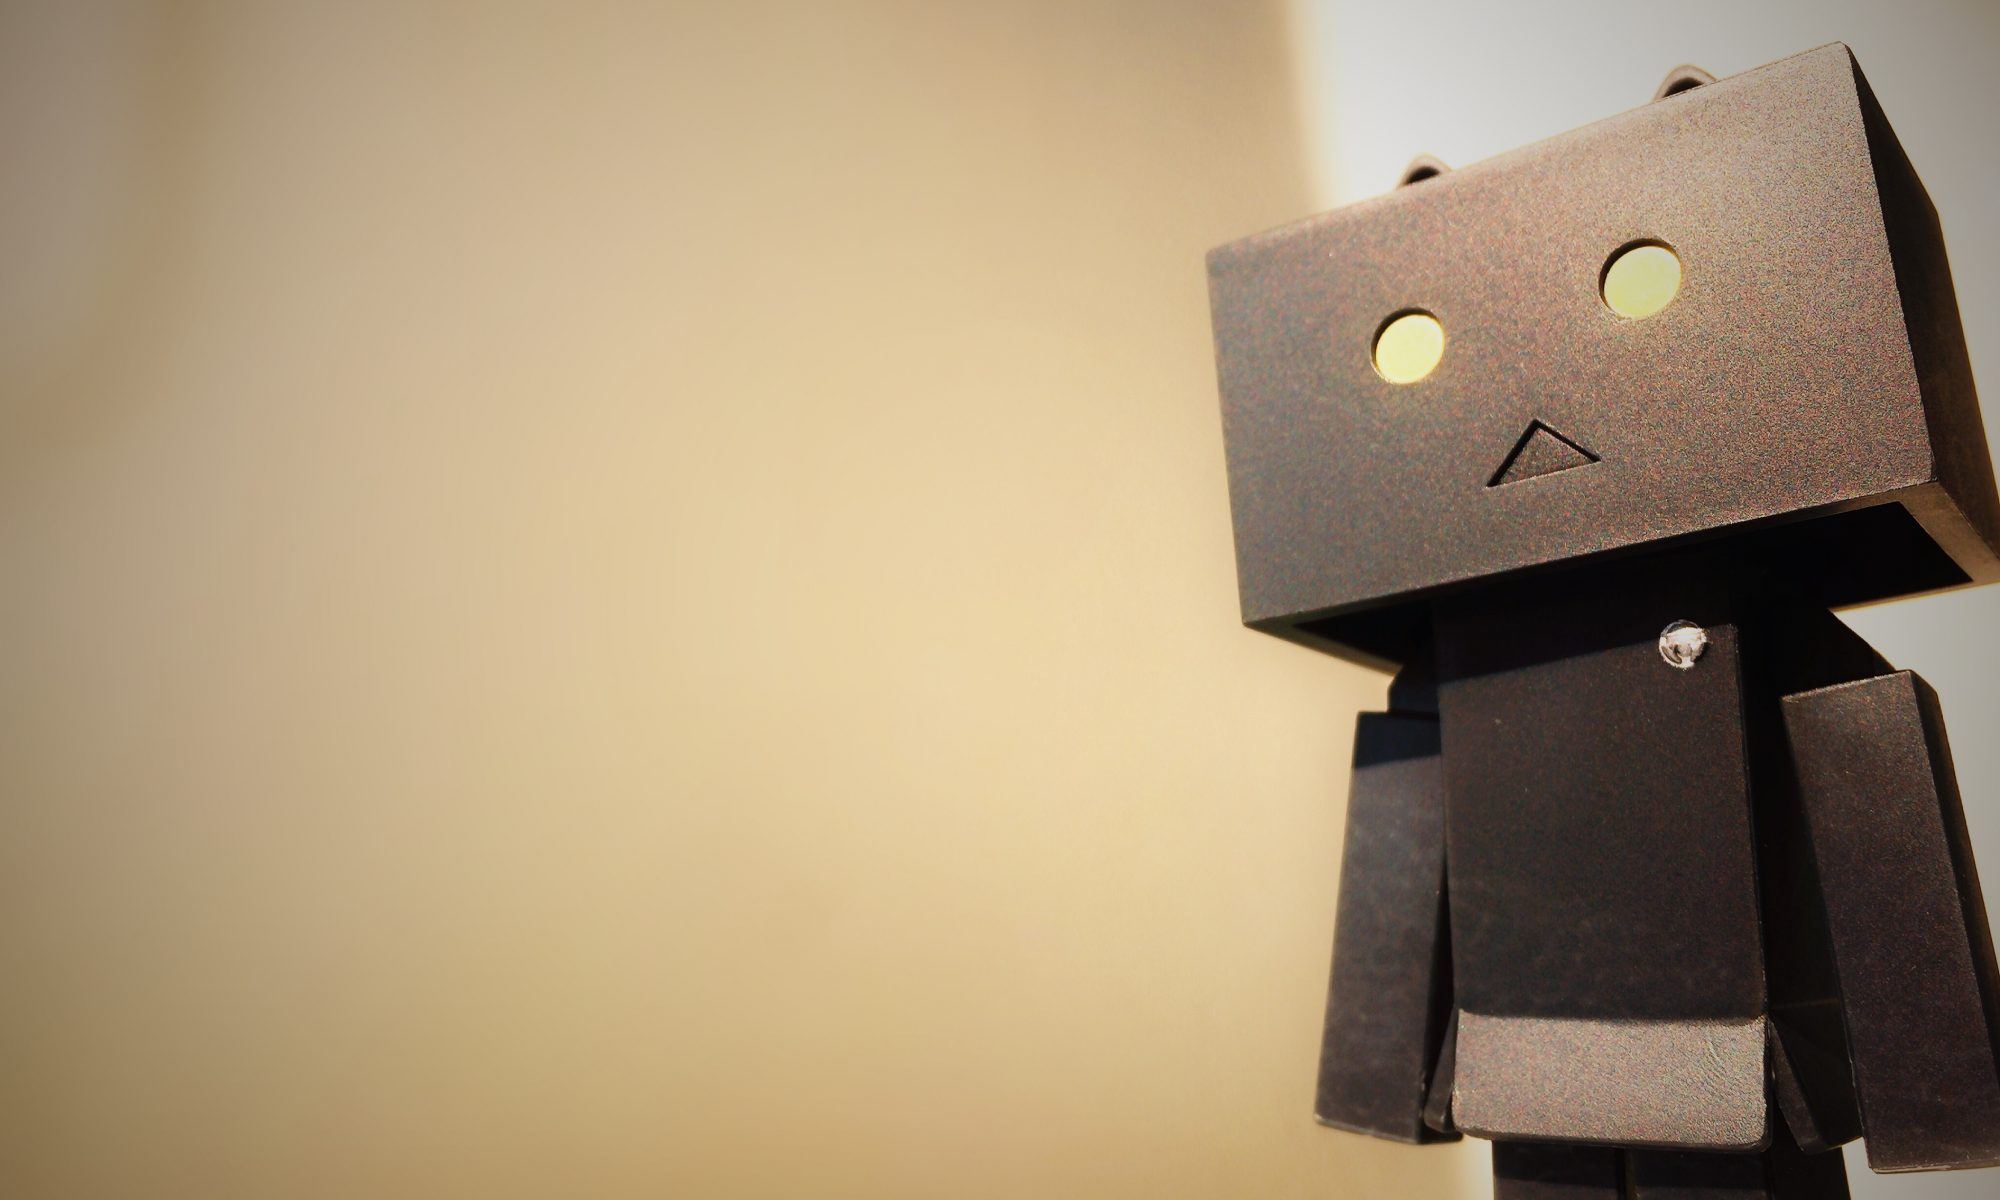 Cardboard robot thinking about how to become more creative and productive